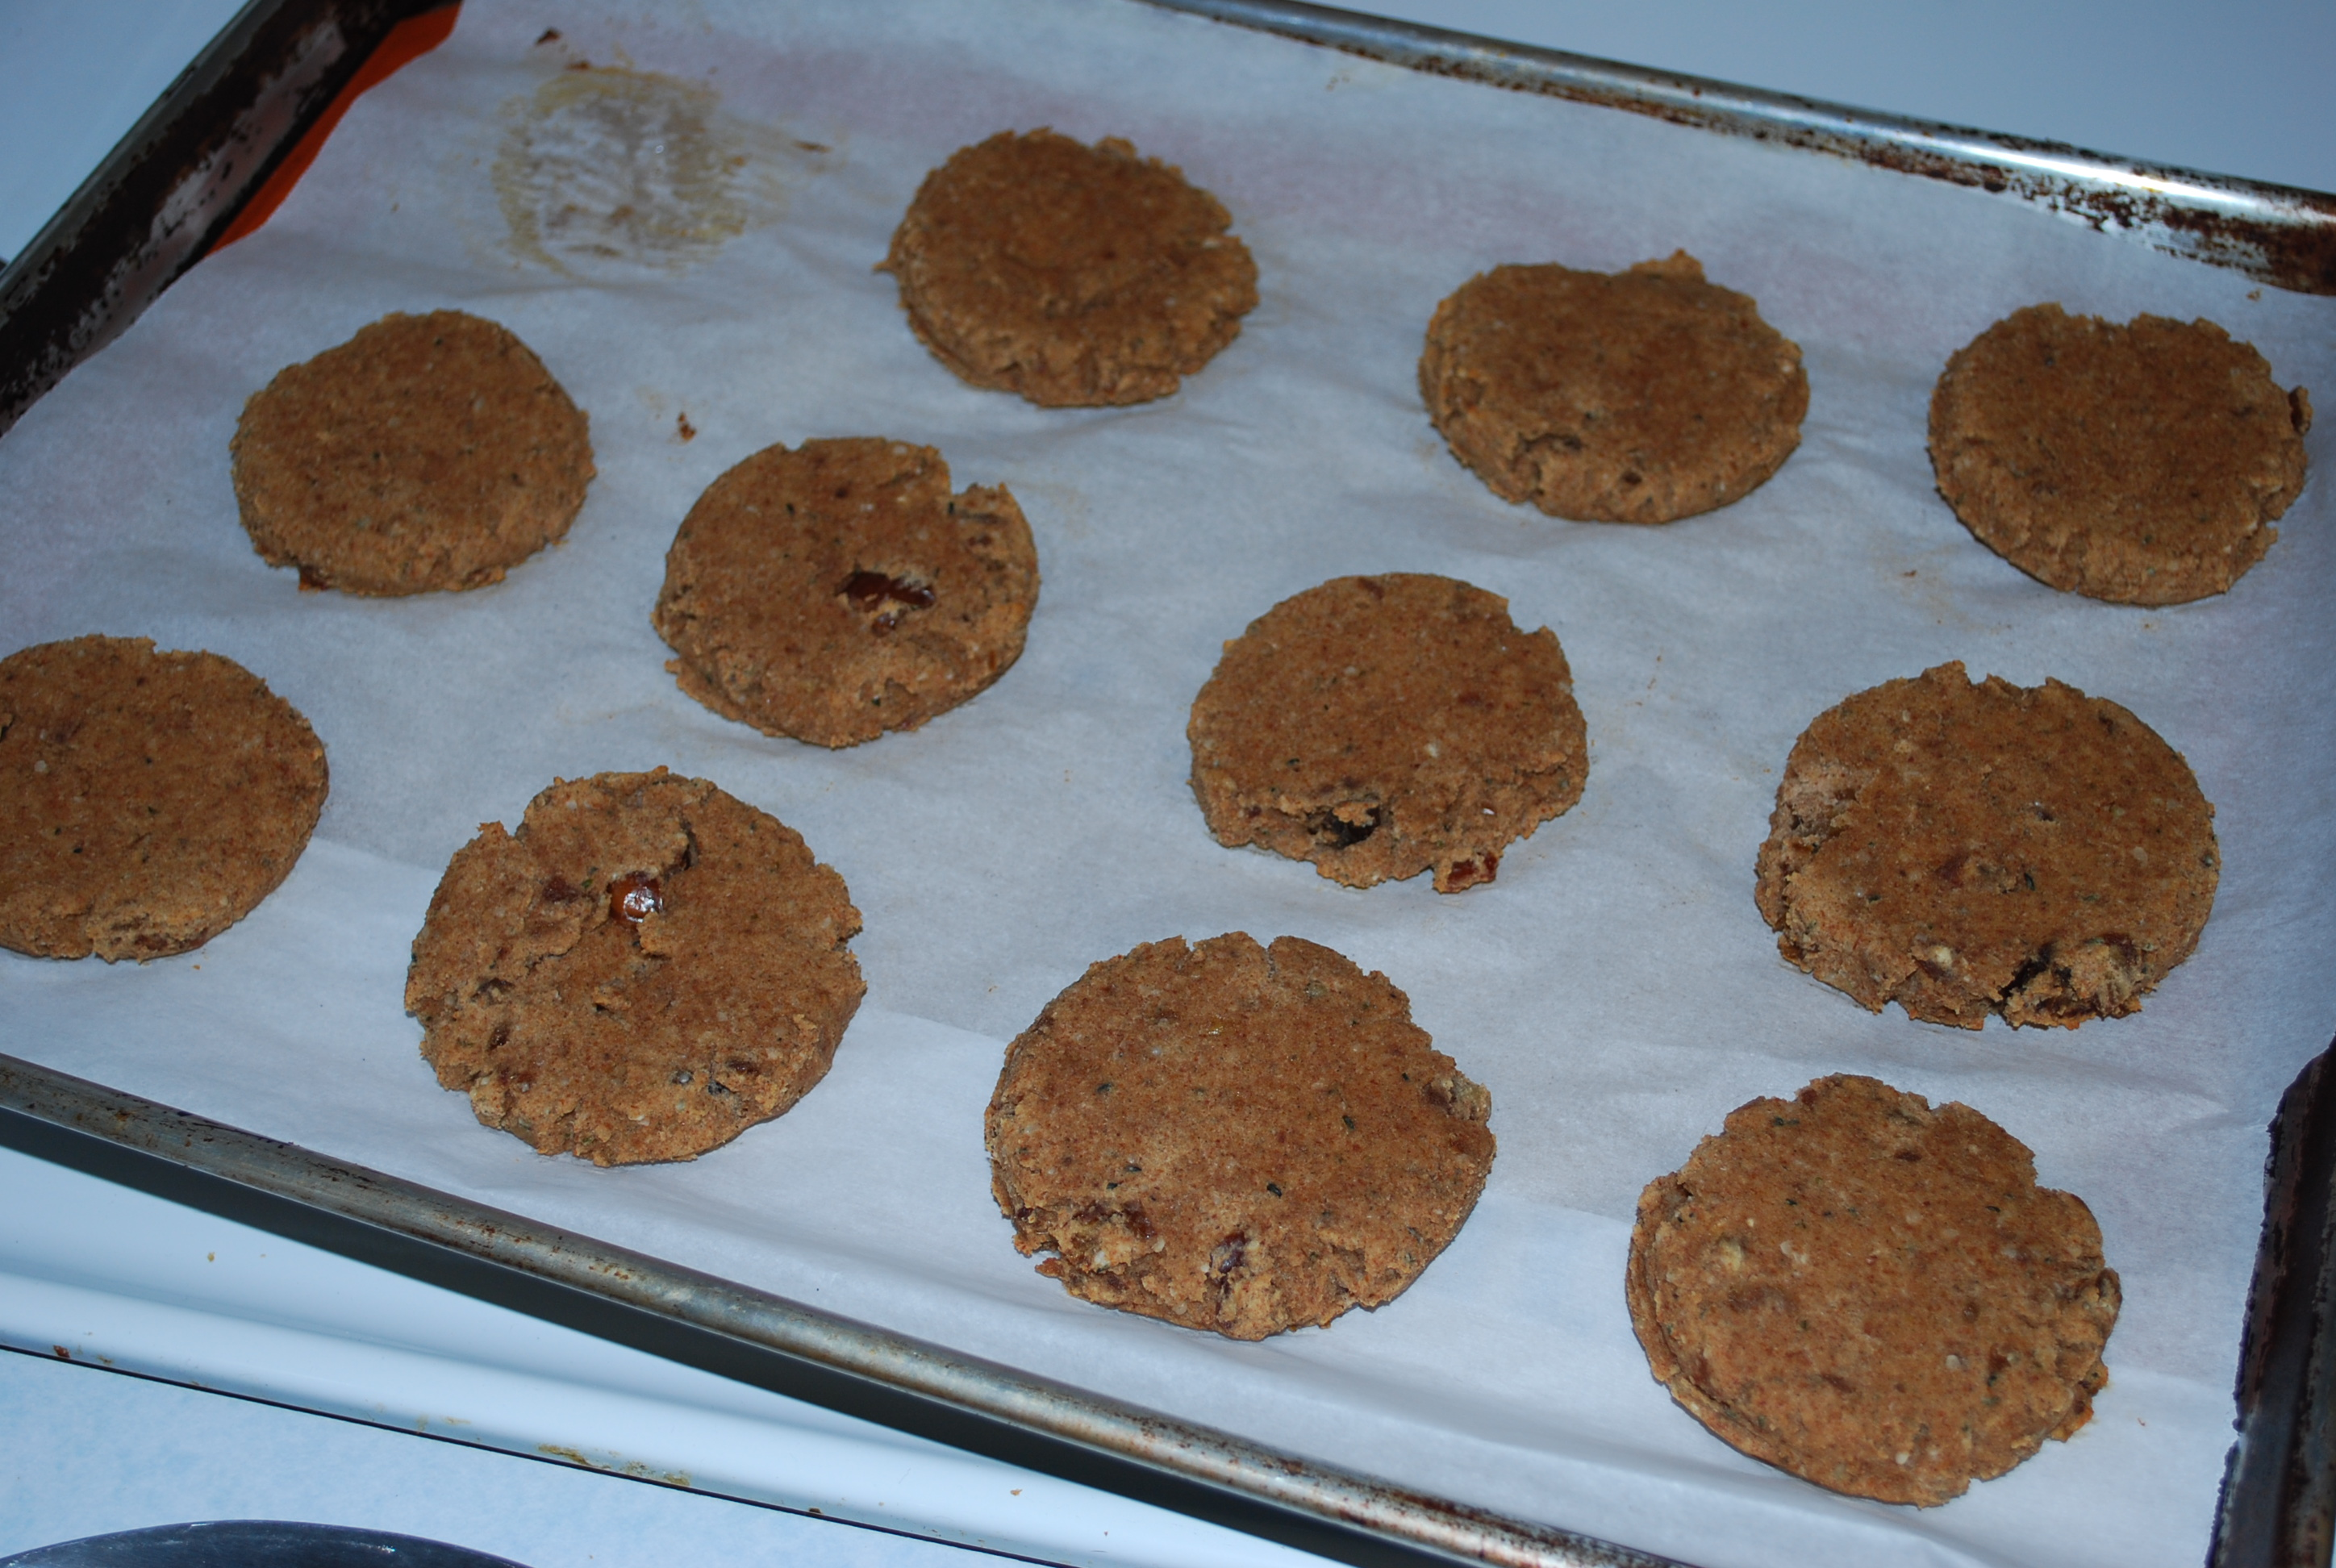 Bake for 25-30 mins or until lightly brown. Let cool on tray for 10-15 minutes before removing